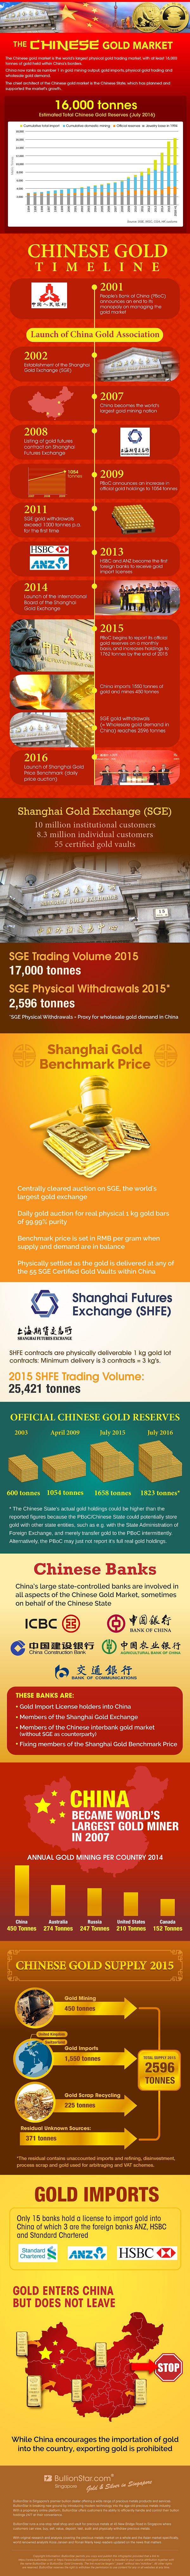 Visualizing the Chinese Gold Market